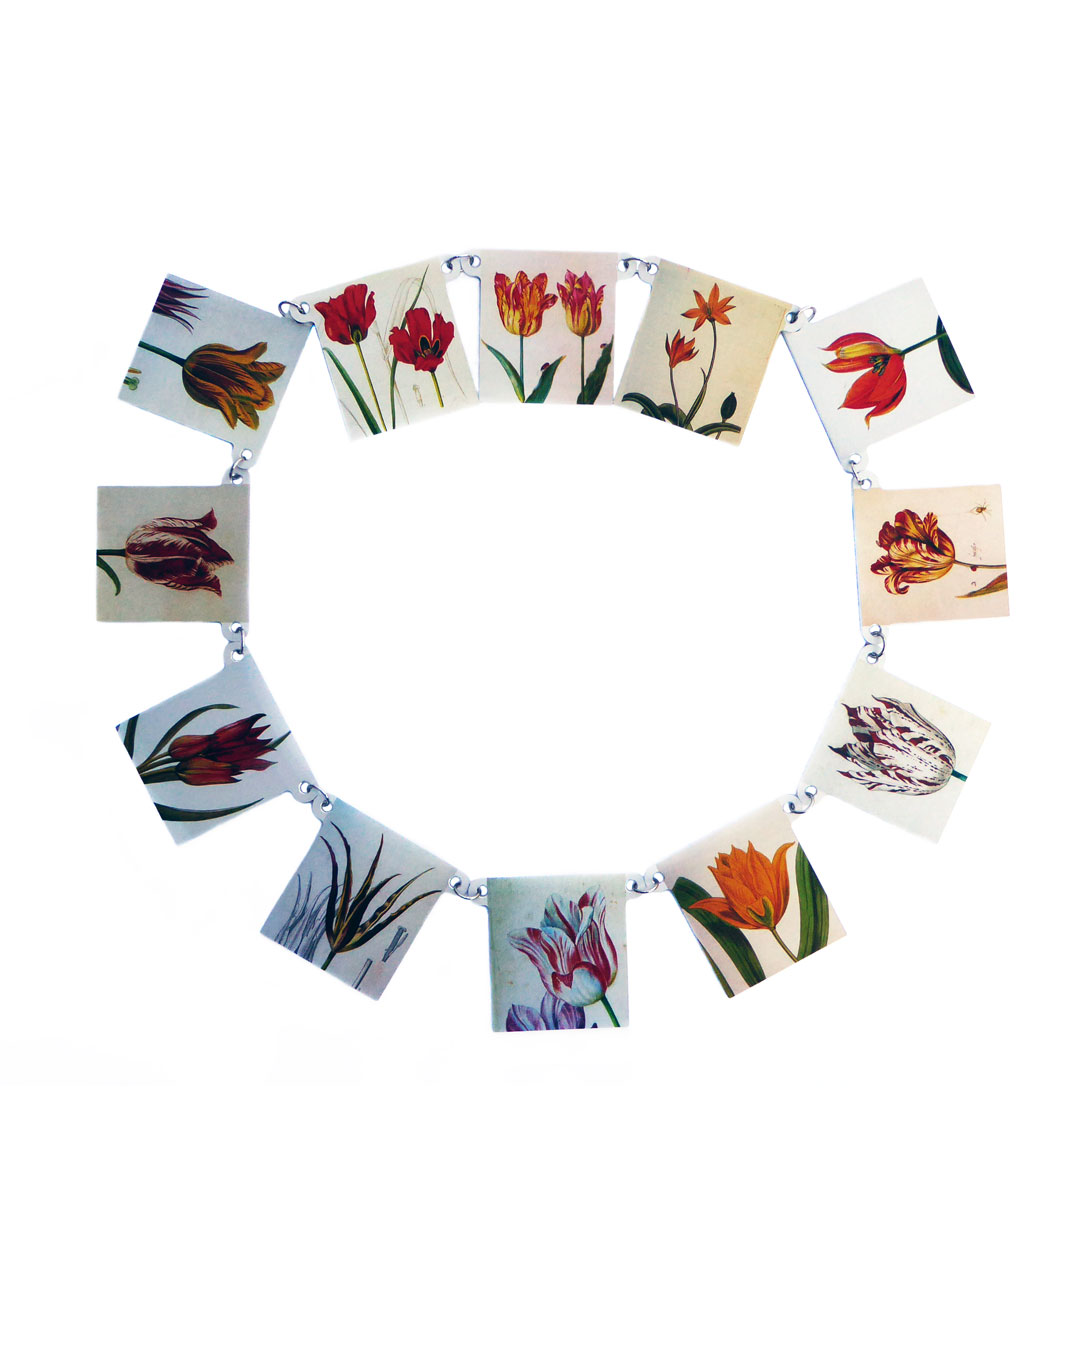 Herman Hermsen, Tulips from Amsterdam, 2019, necklace; print on aluminium, 278 x 5 mm, €850